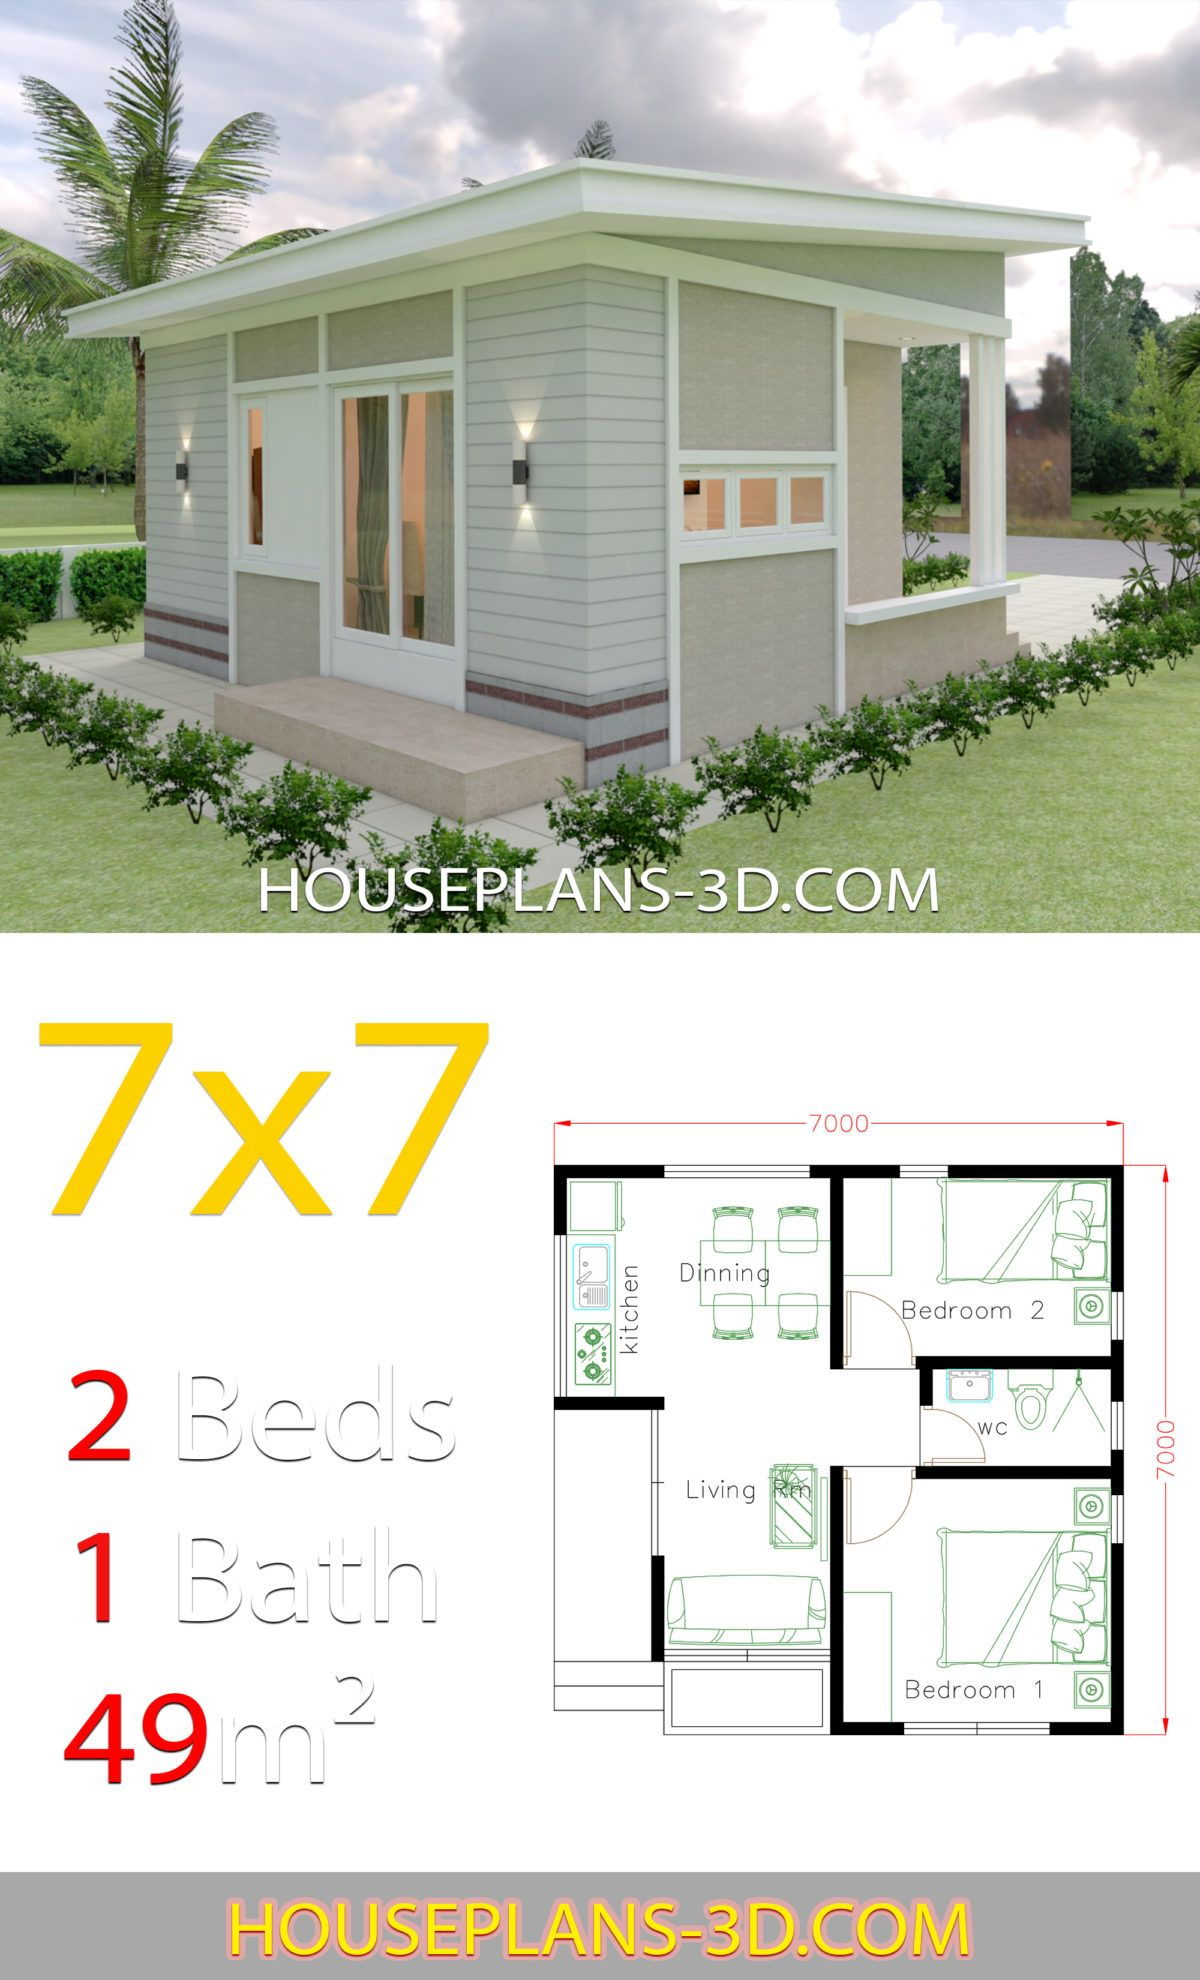 Small House Design 7x7 With 2 Bedrooms House Plans 3d Small House Design Plans Two Bedroom House Design Small House Design